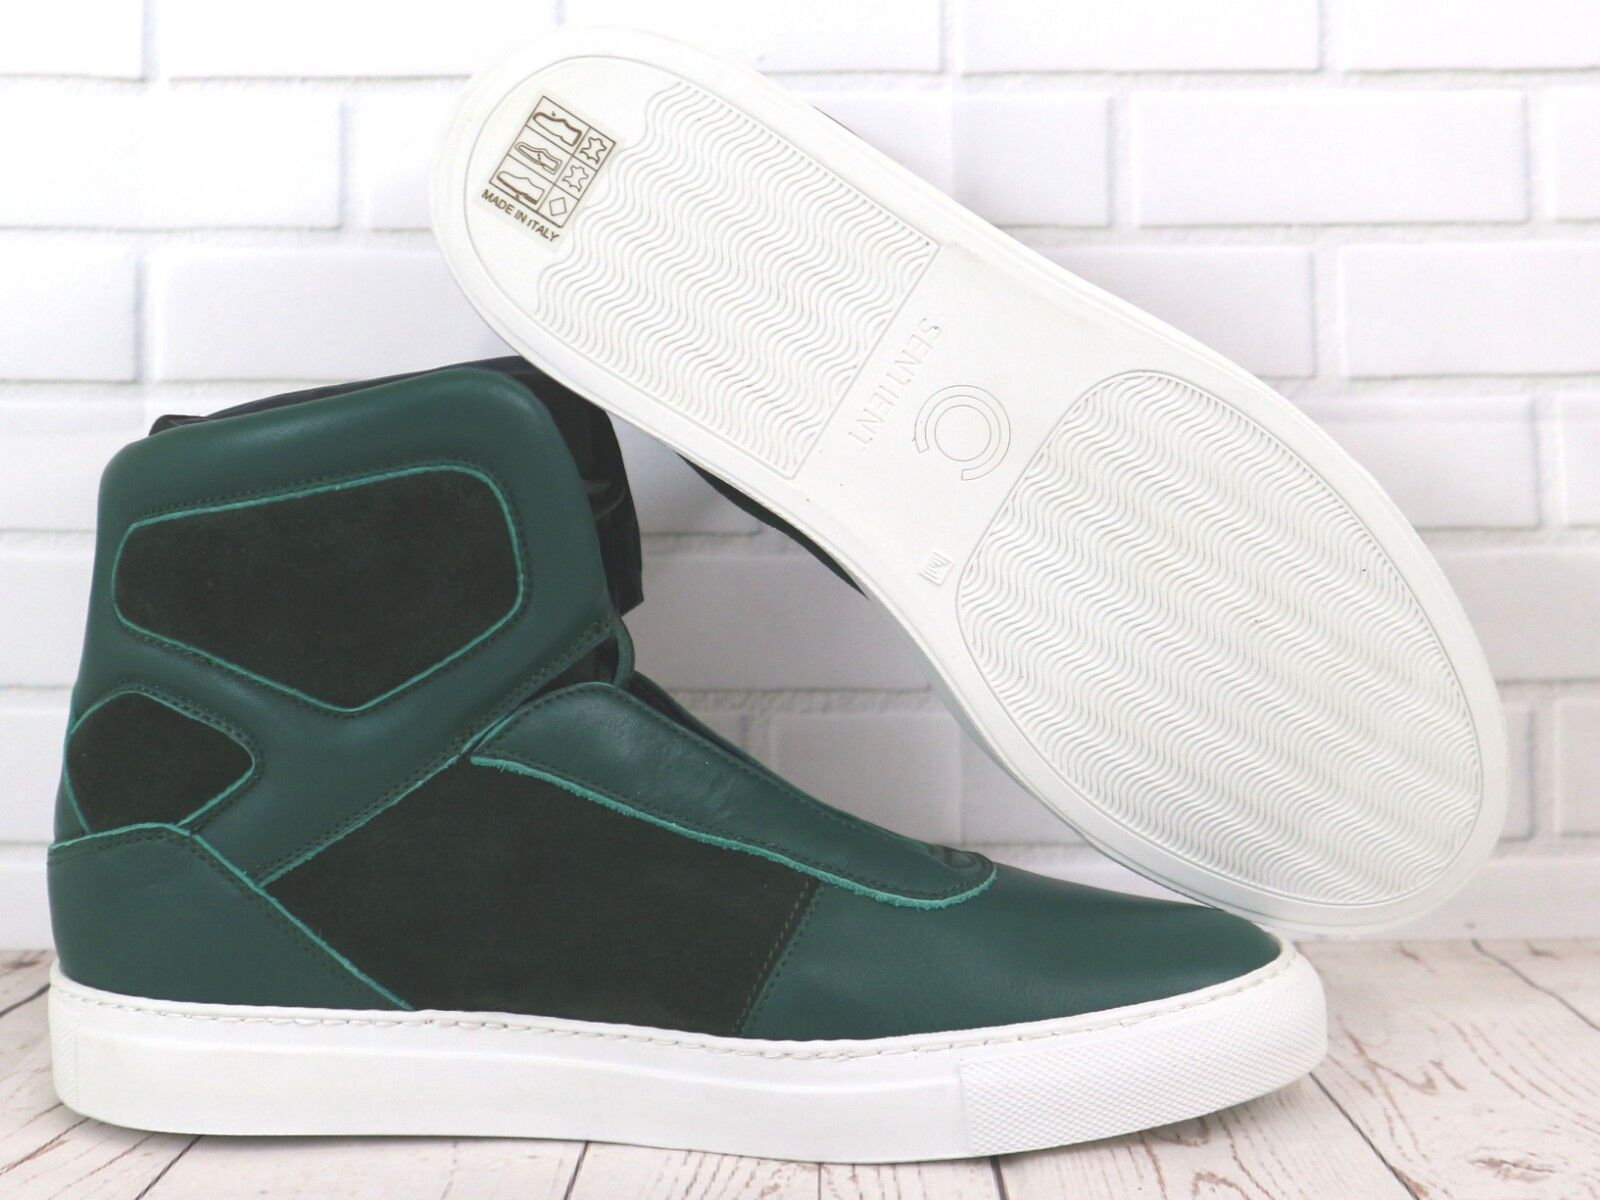 hot sale online 0f2b4 98166 Cipher Sentient Deep Green Leather Suede Men s High Top Trainers Sneakers